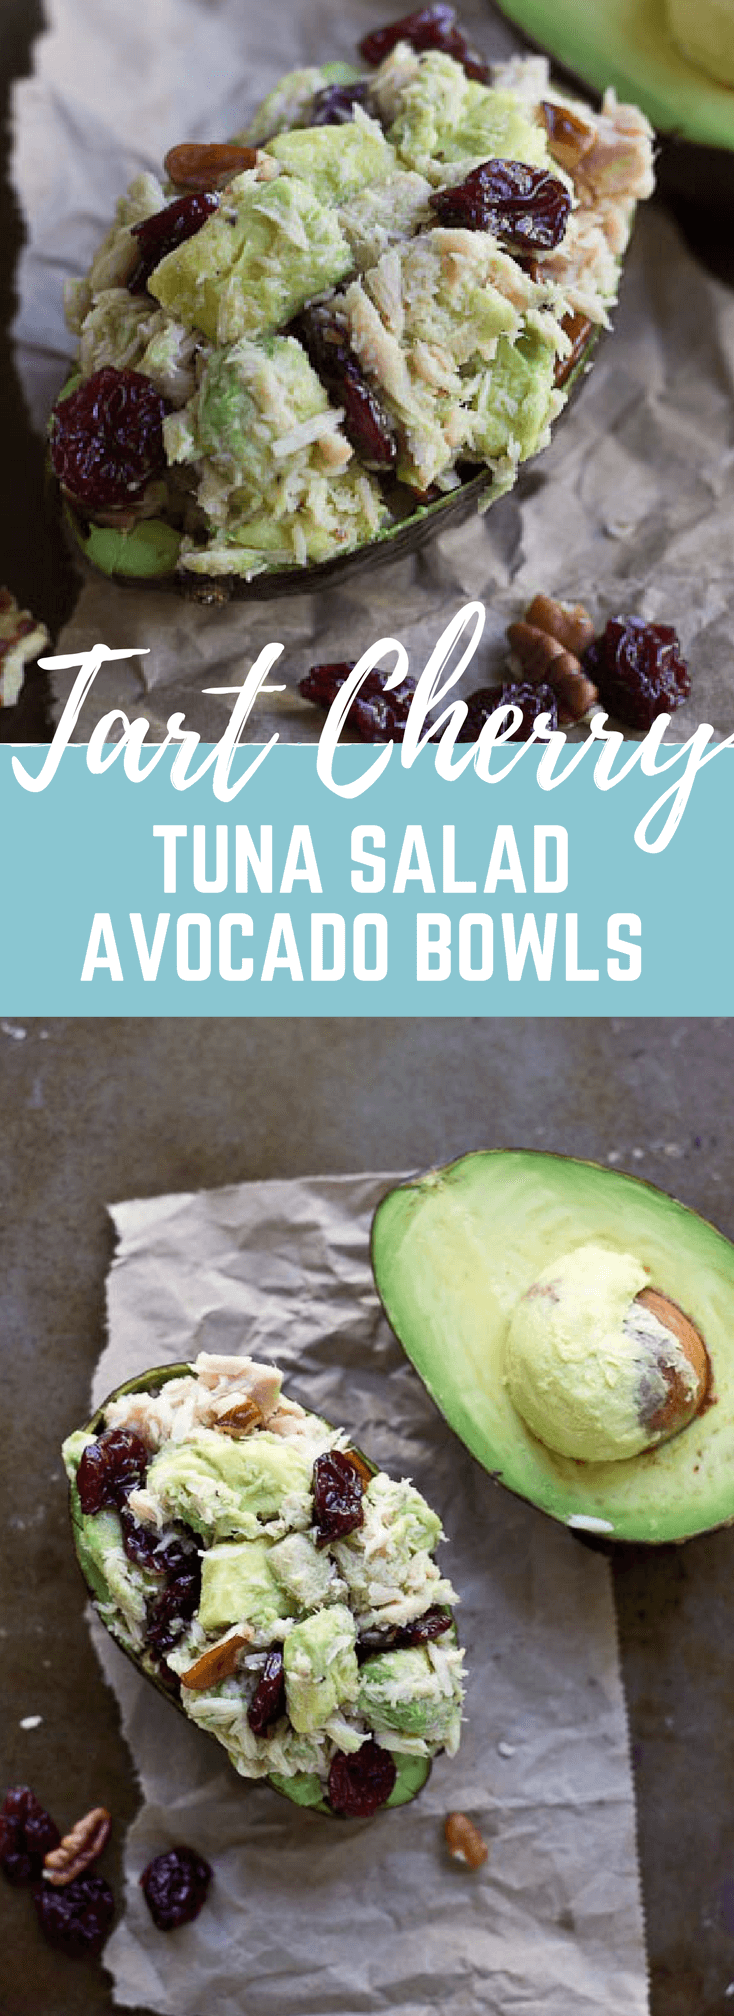 This is one POWER packed tuna salad recipe. These Tart Cherry Tuna Salad Avocado Bowls are filled with healthy fats from tuna, avocado, and pecans, it's also rich in anthocyanins thanks to Montmorency tart cherries! Hello gawwwgeous! @choosecherries